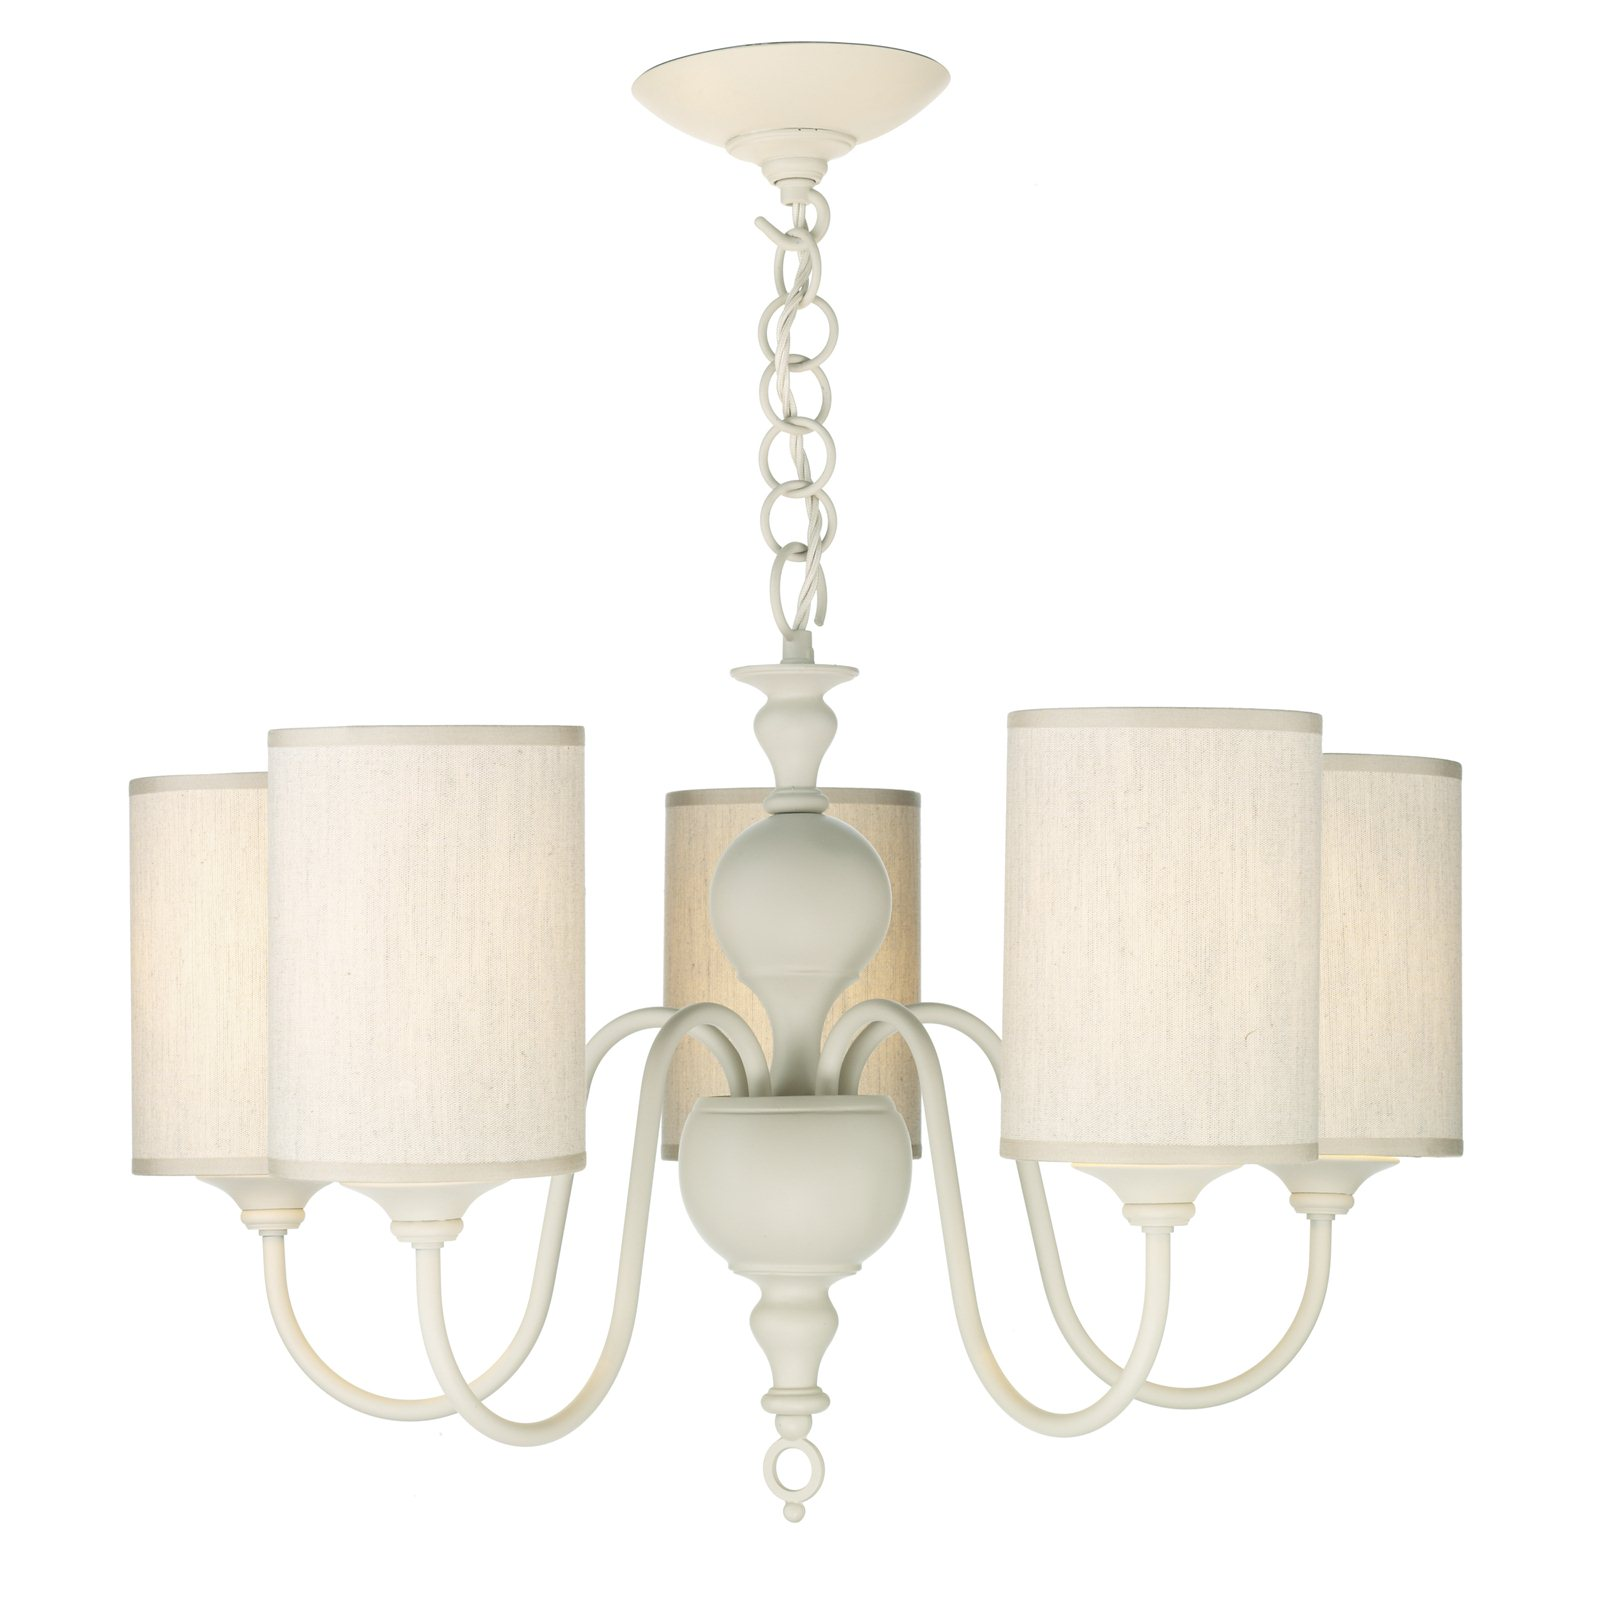 Hicks and hicks vintage cream 5 light chandelier hicks hicks mozeypictures Images